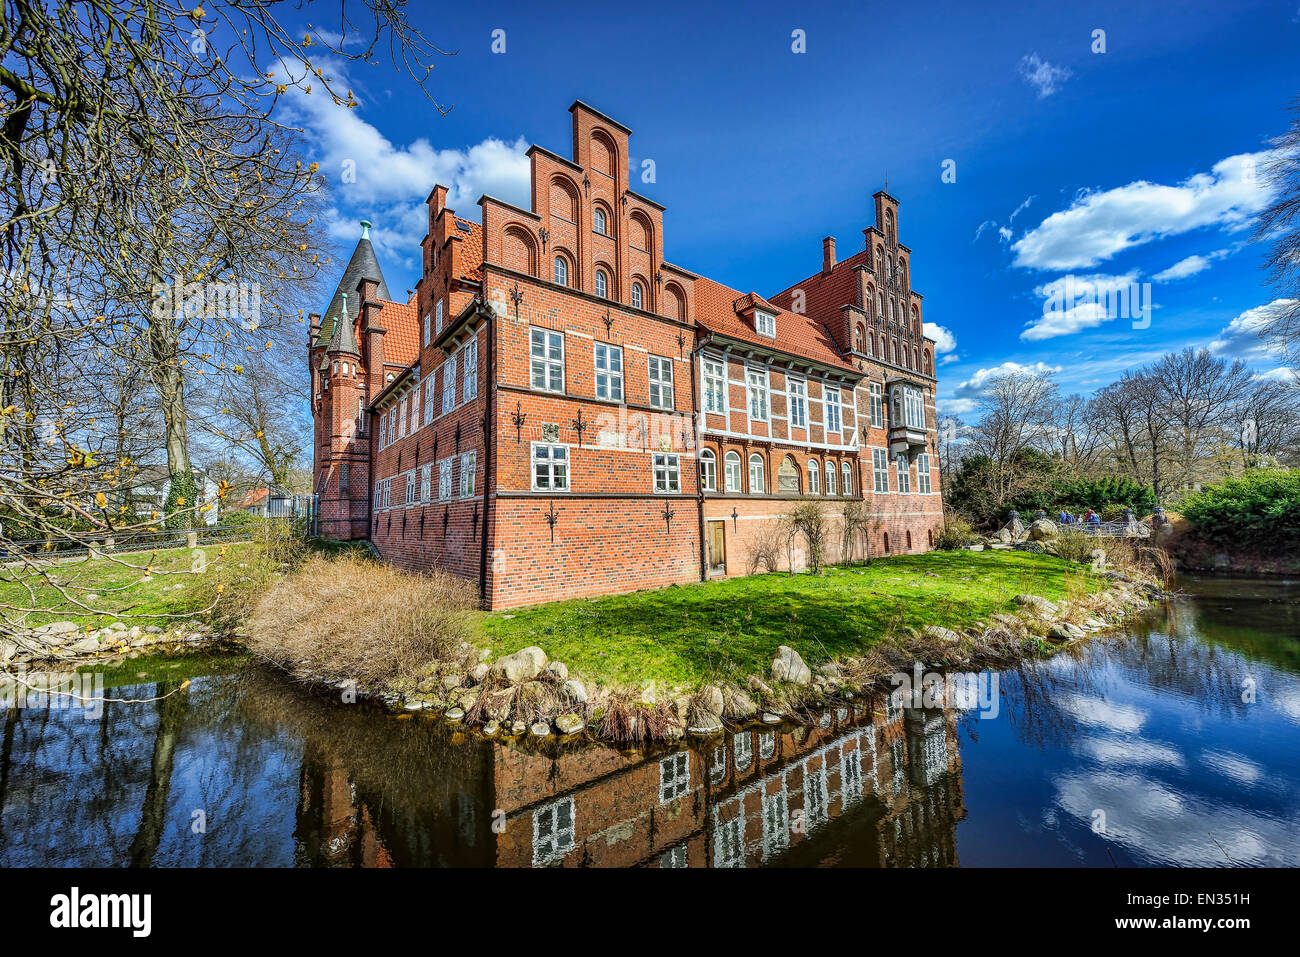 Badewannendoktor Hamburg Bergedorf Bergedorf Castle Hamburg Germany Stock Photo 81819069 Alamy